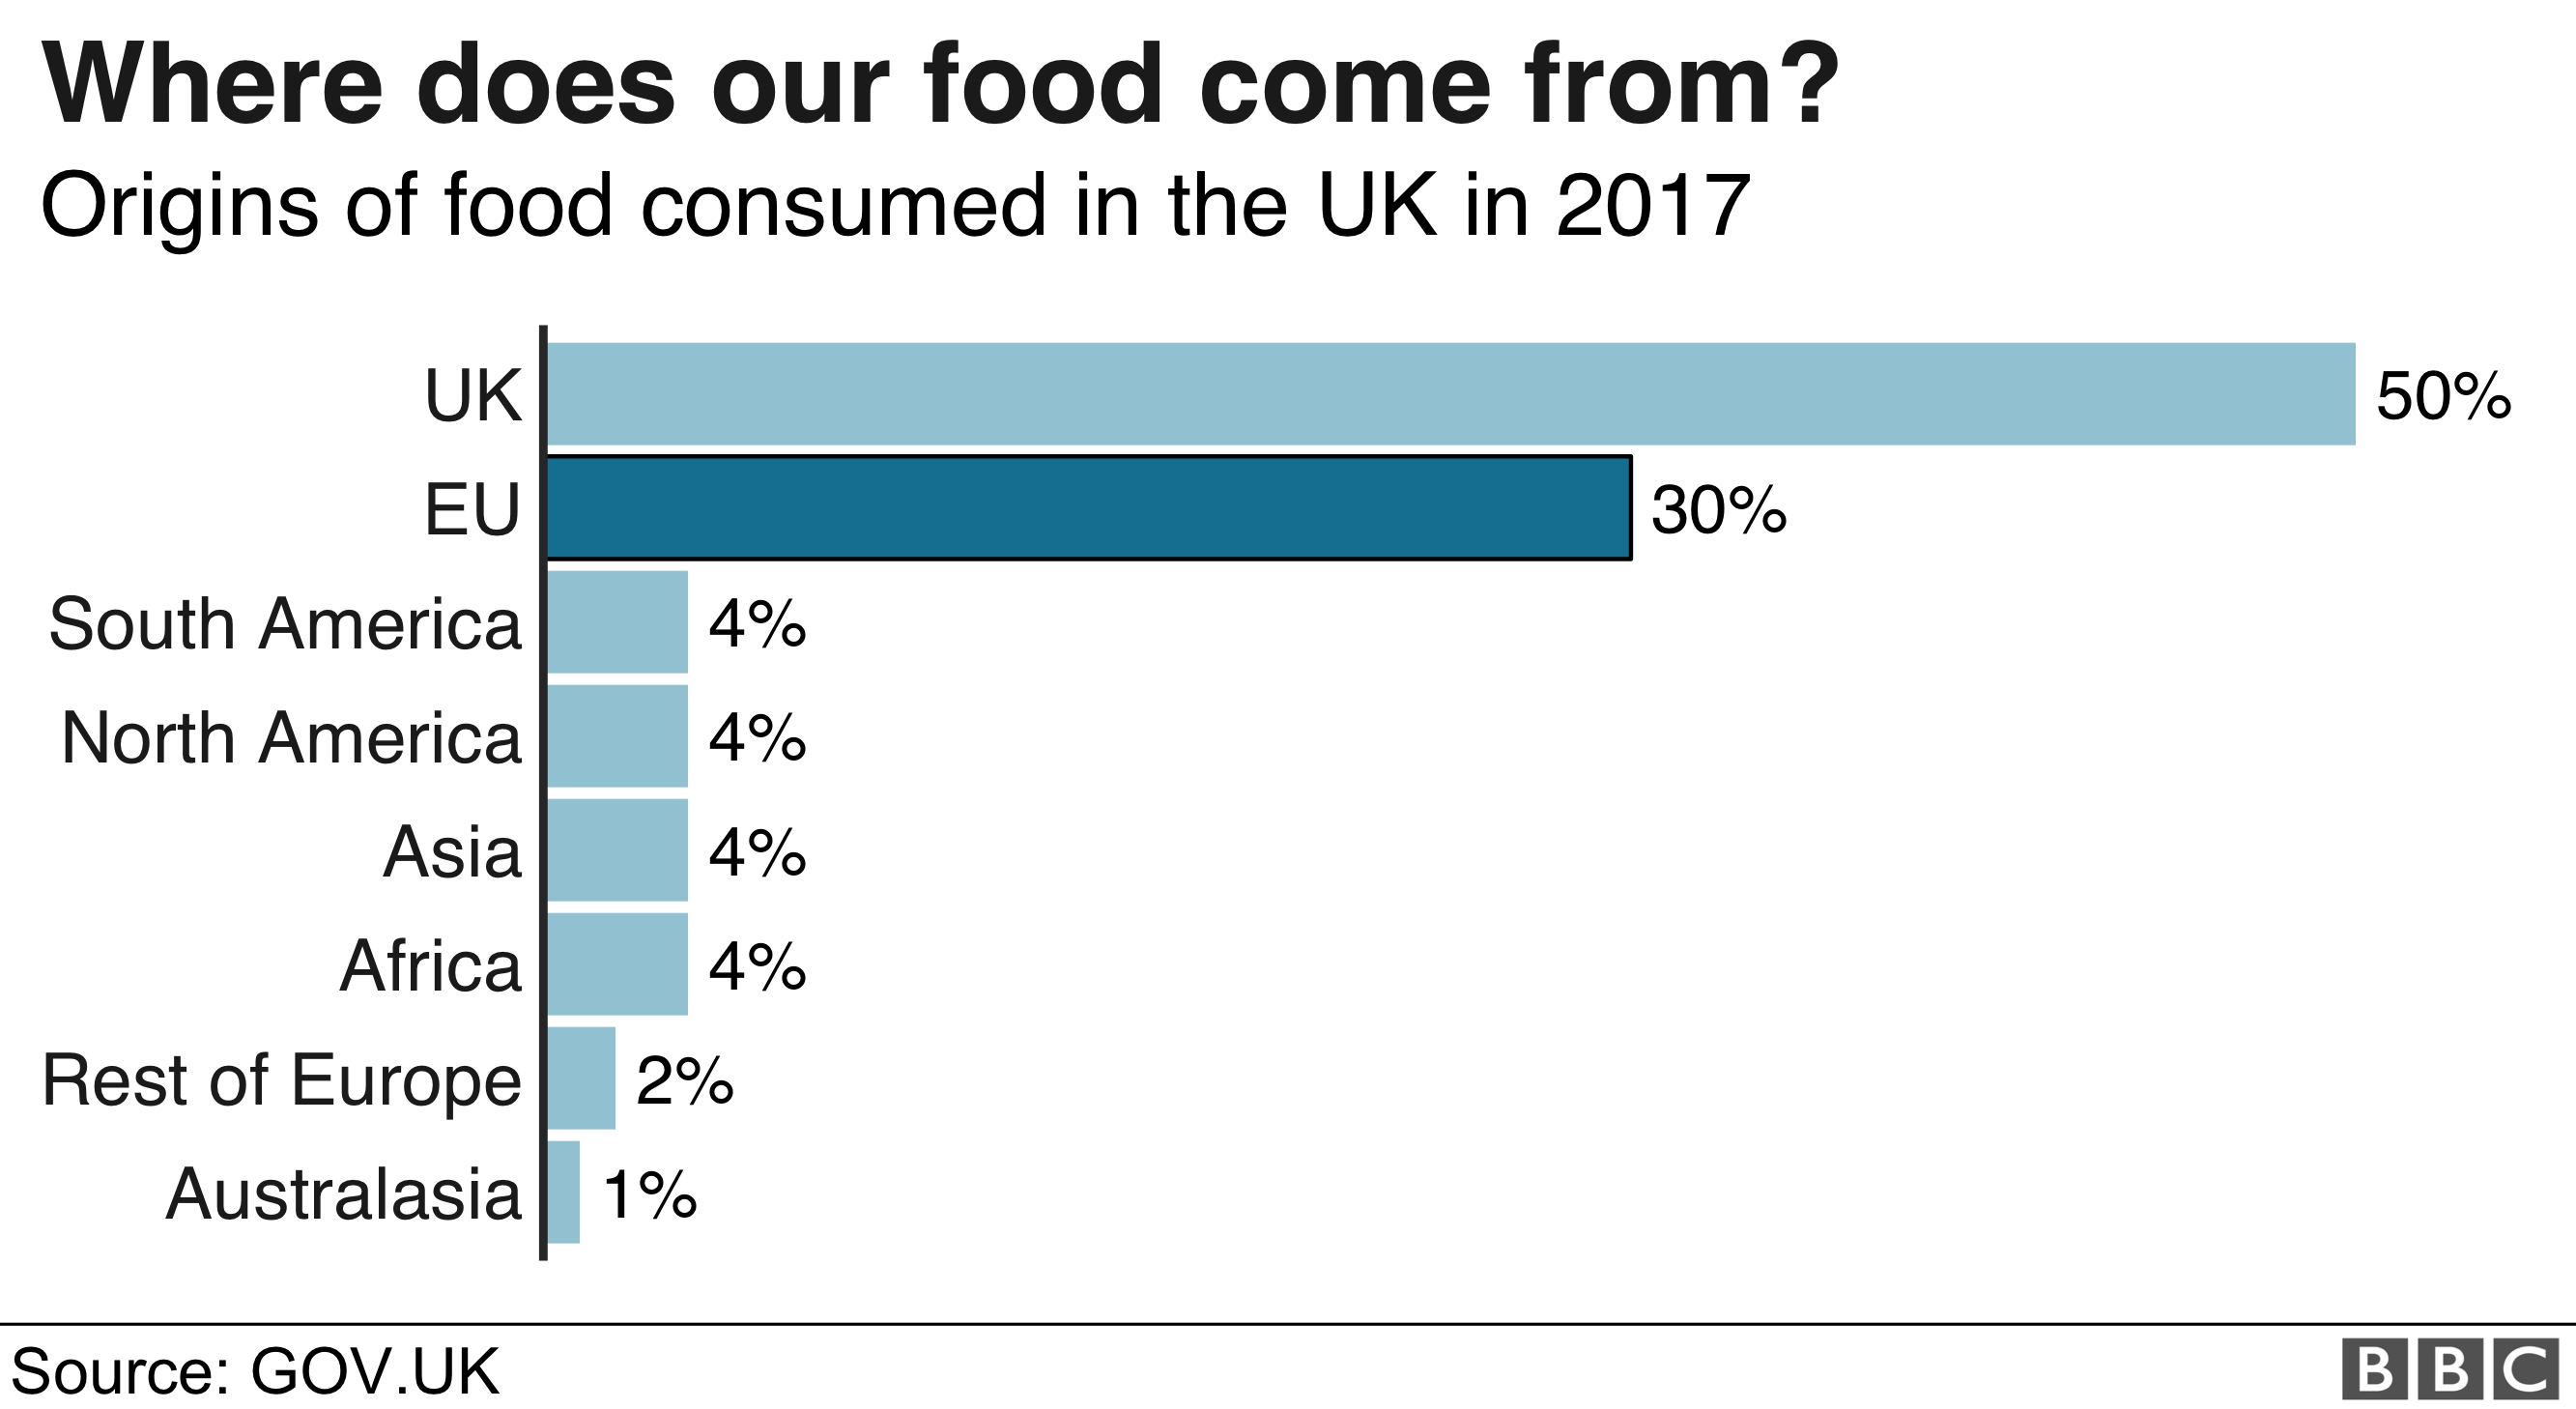 Chart showing where the UK's food comes from - 50% from the UK itself and 30% from the EU